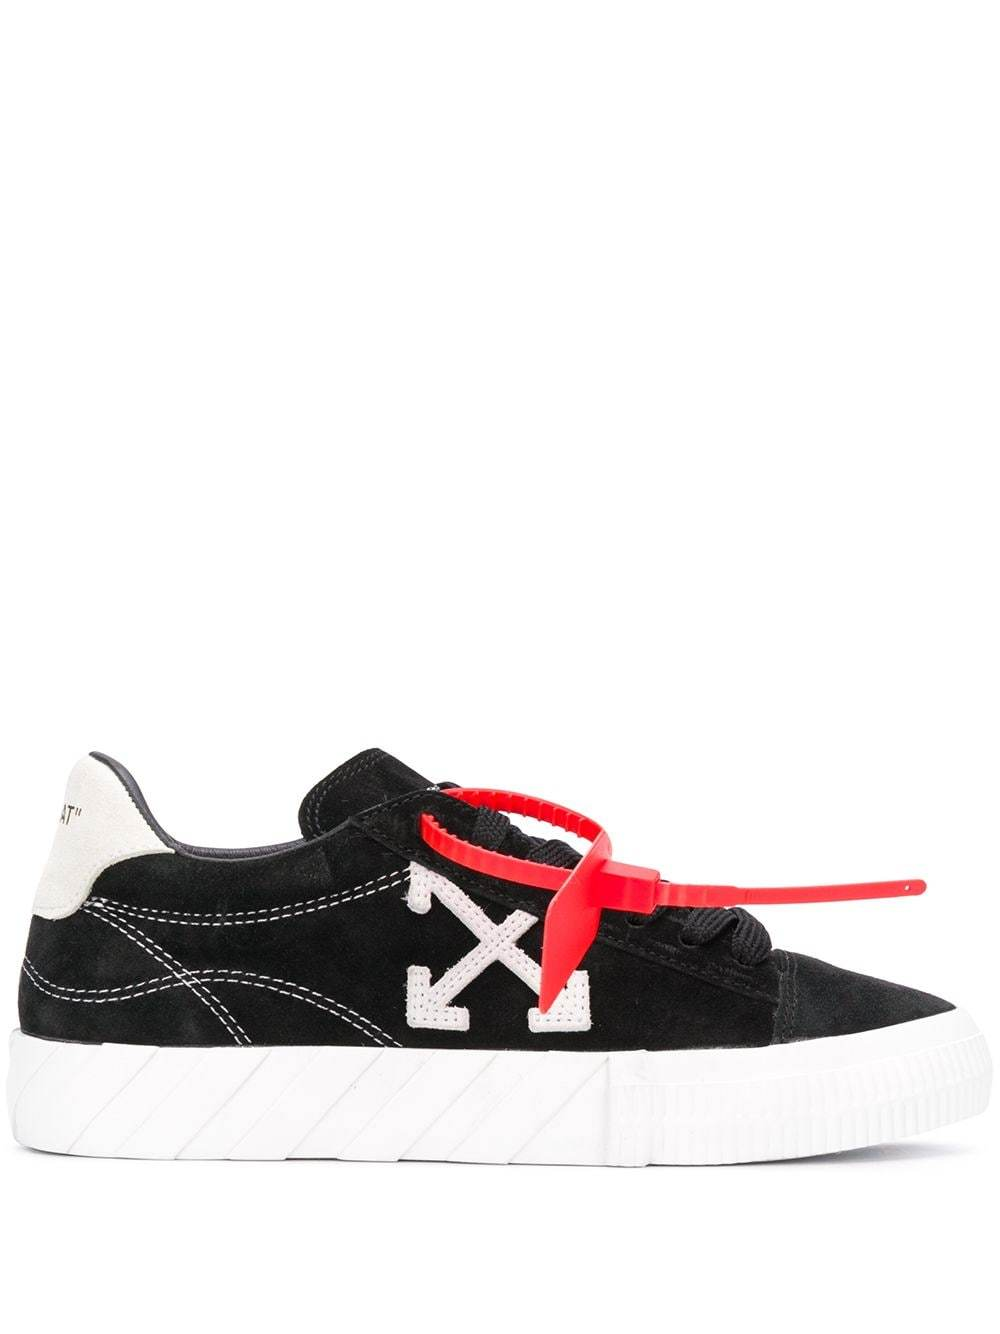 OFF-WHITE Women New Arrow Low Vulcanized Sneakers Black - Maison De Fashion